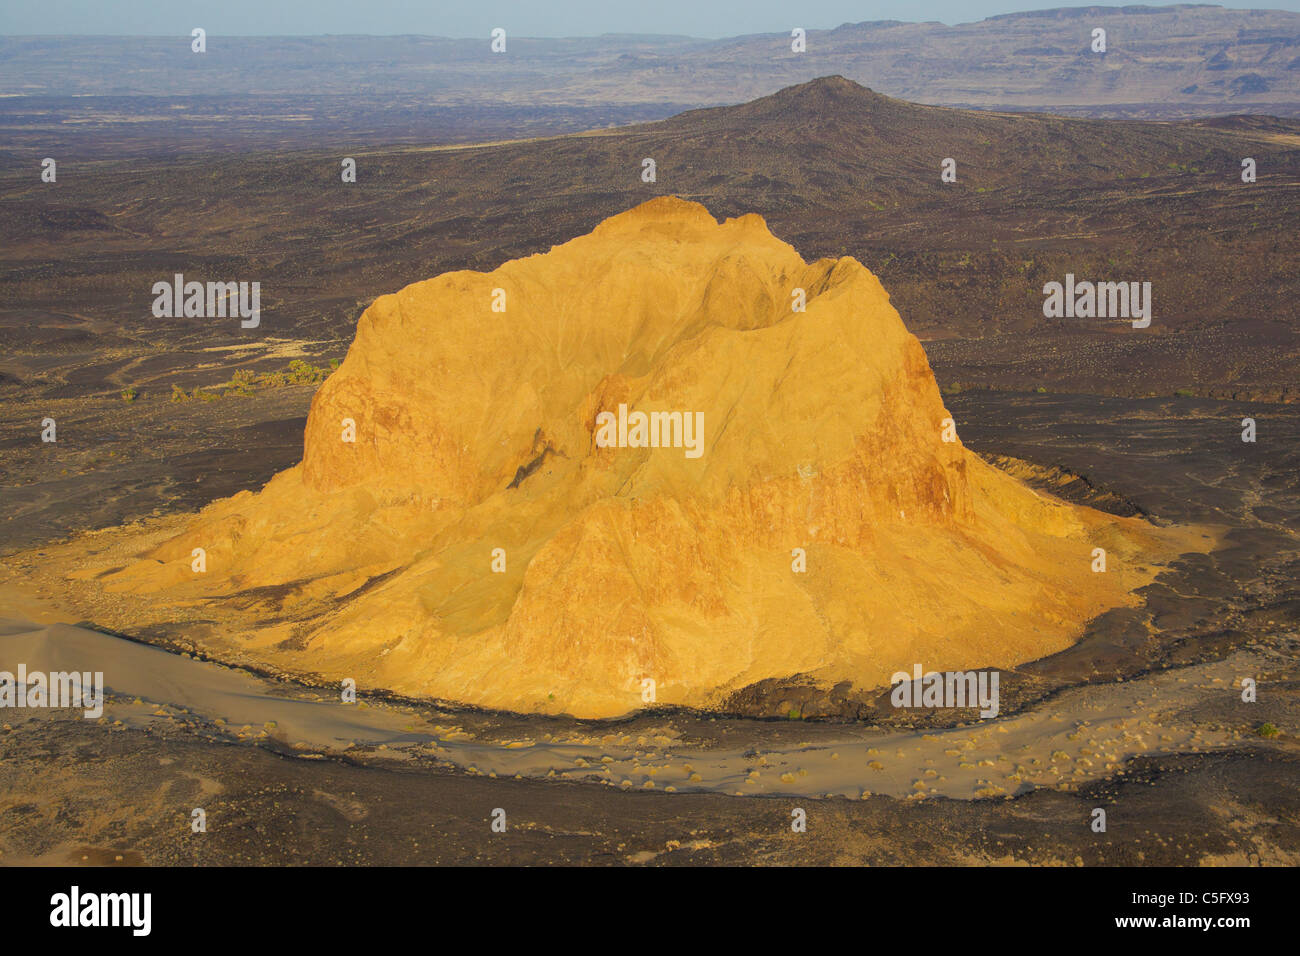 A crumbling extinct volcano, which is known as Aruba Rock - Stock Image